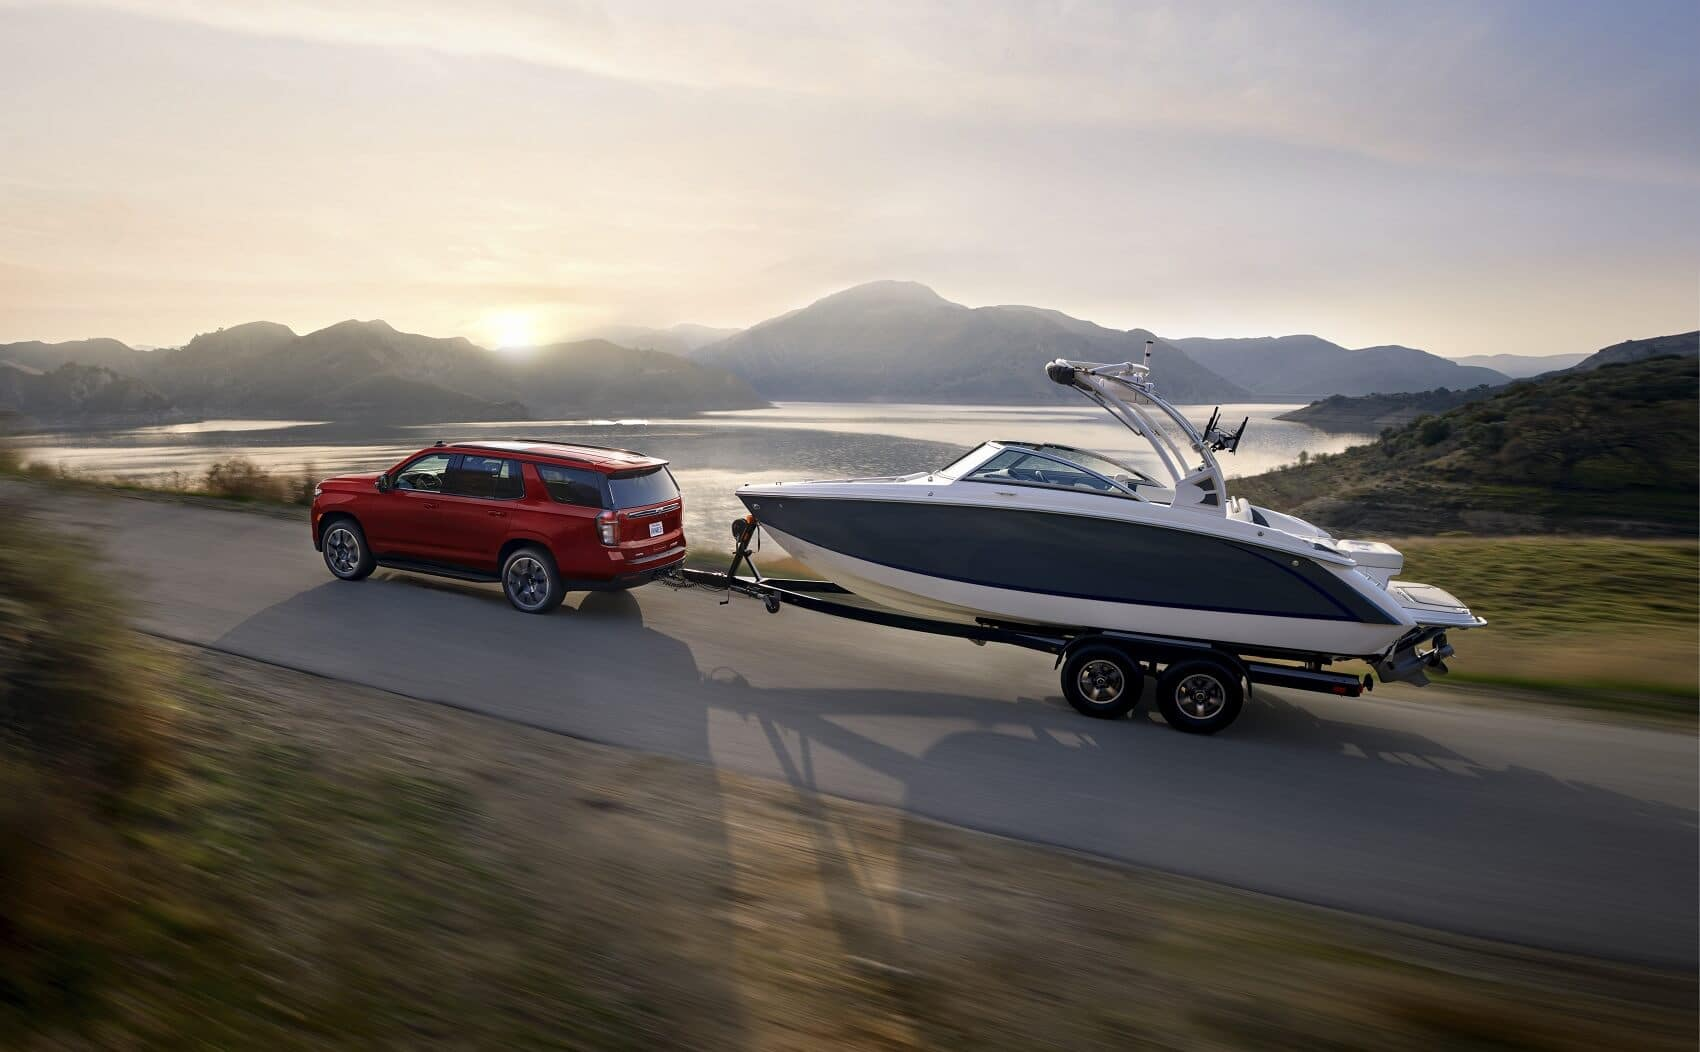 Technology of the 2021 Chevy Tahoe